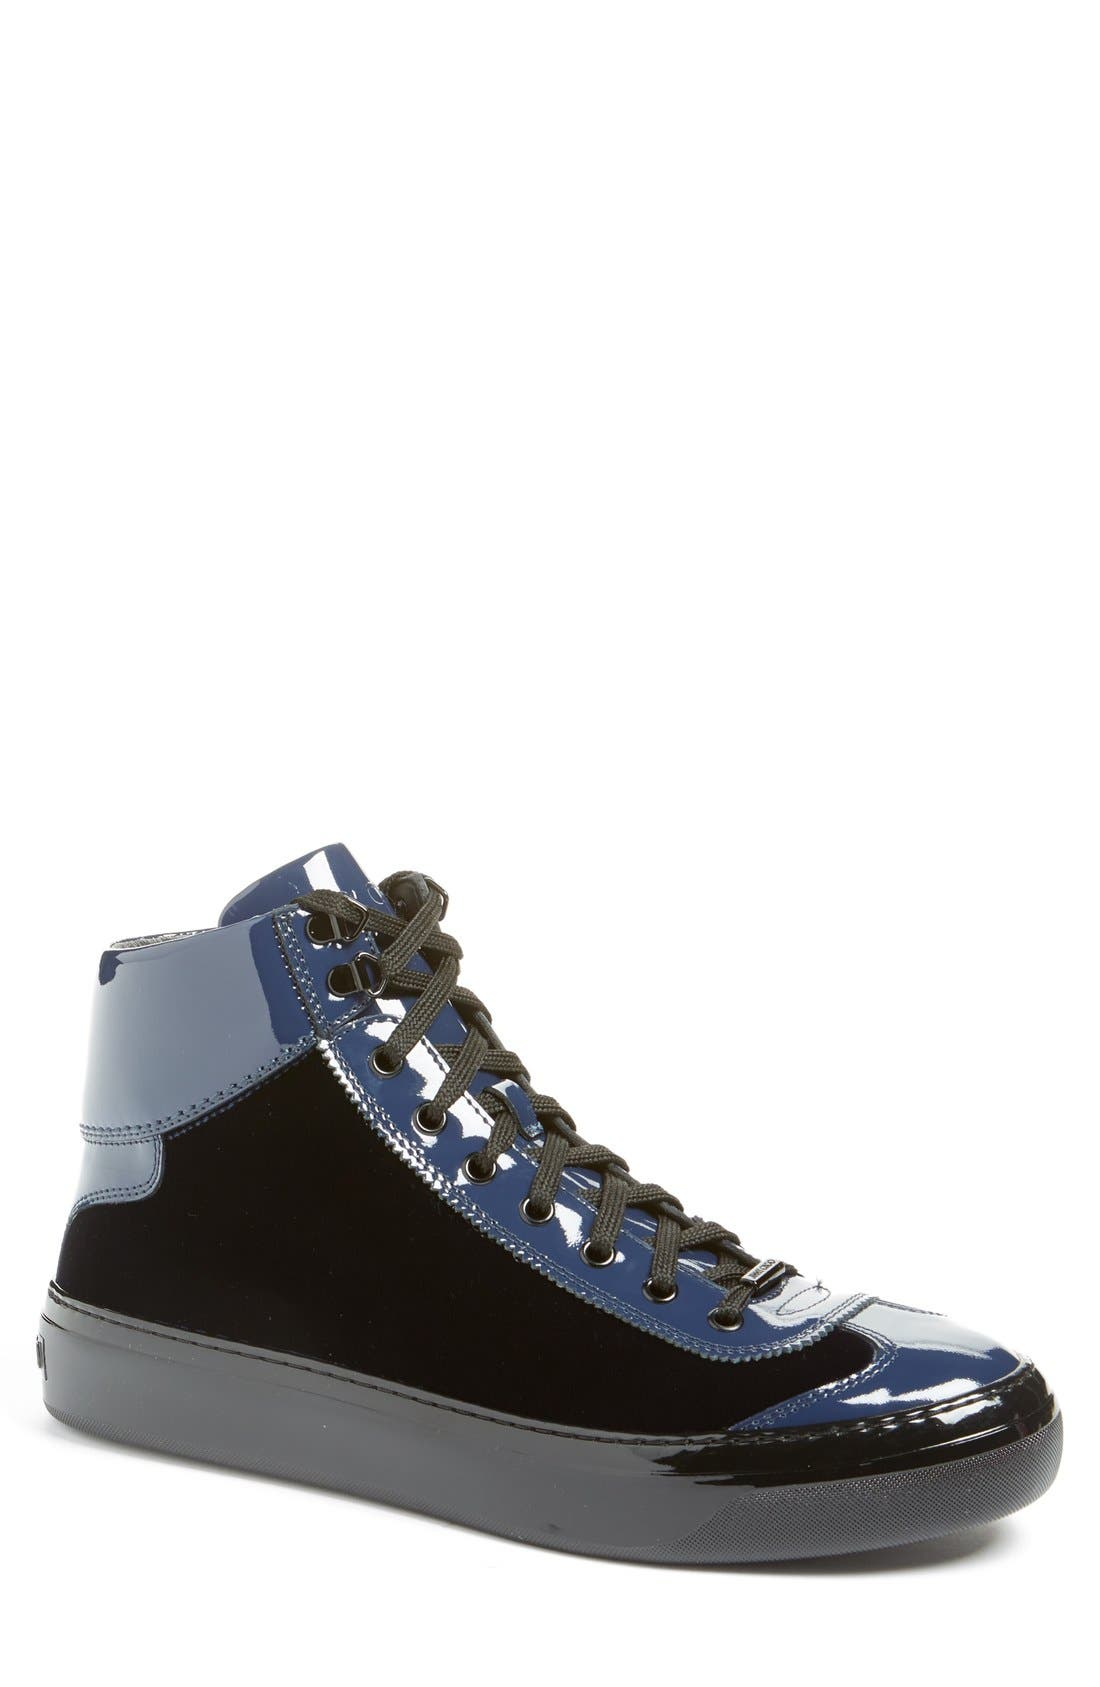 JIMMY CHOO 'Argyle' High Top Sneaker